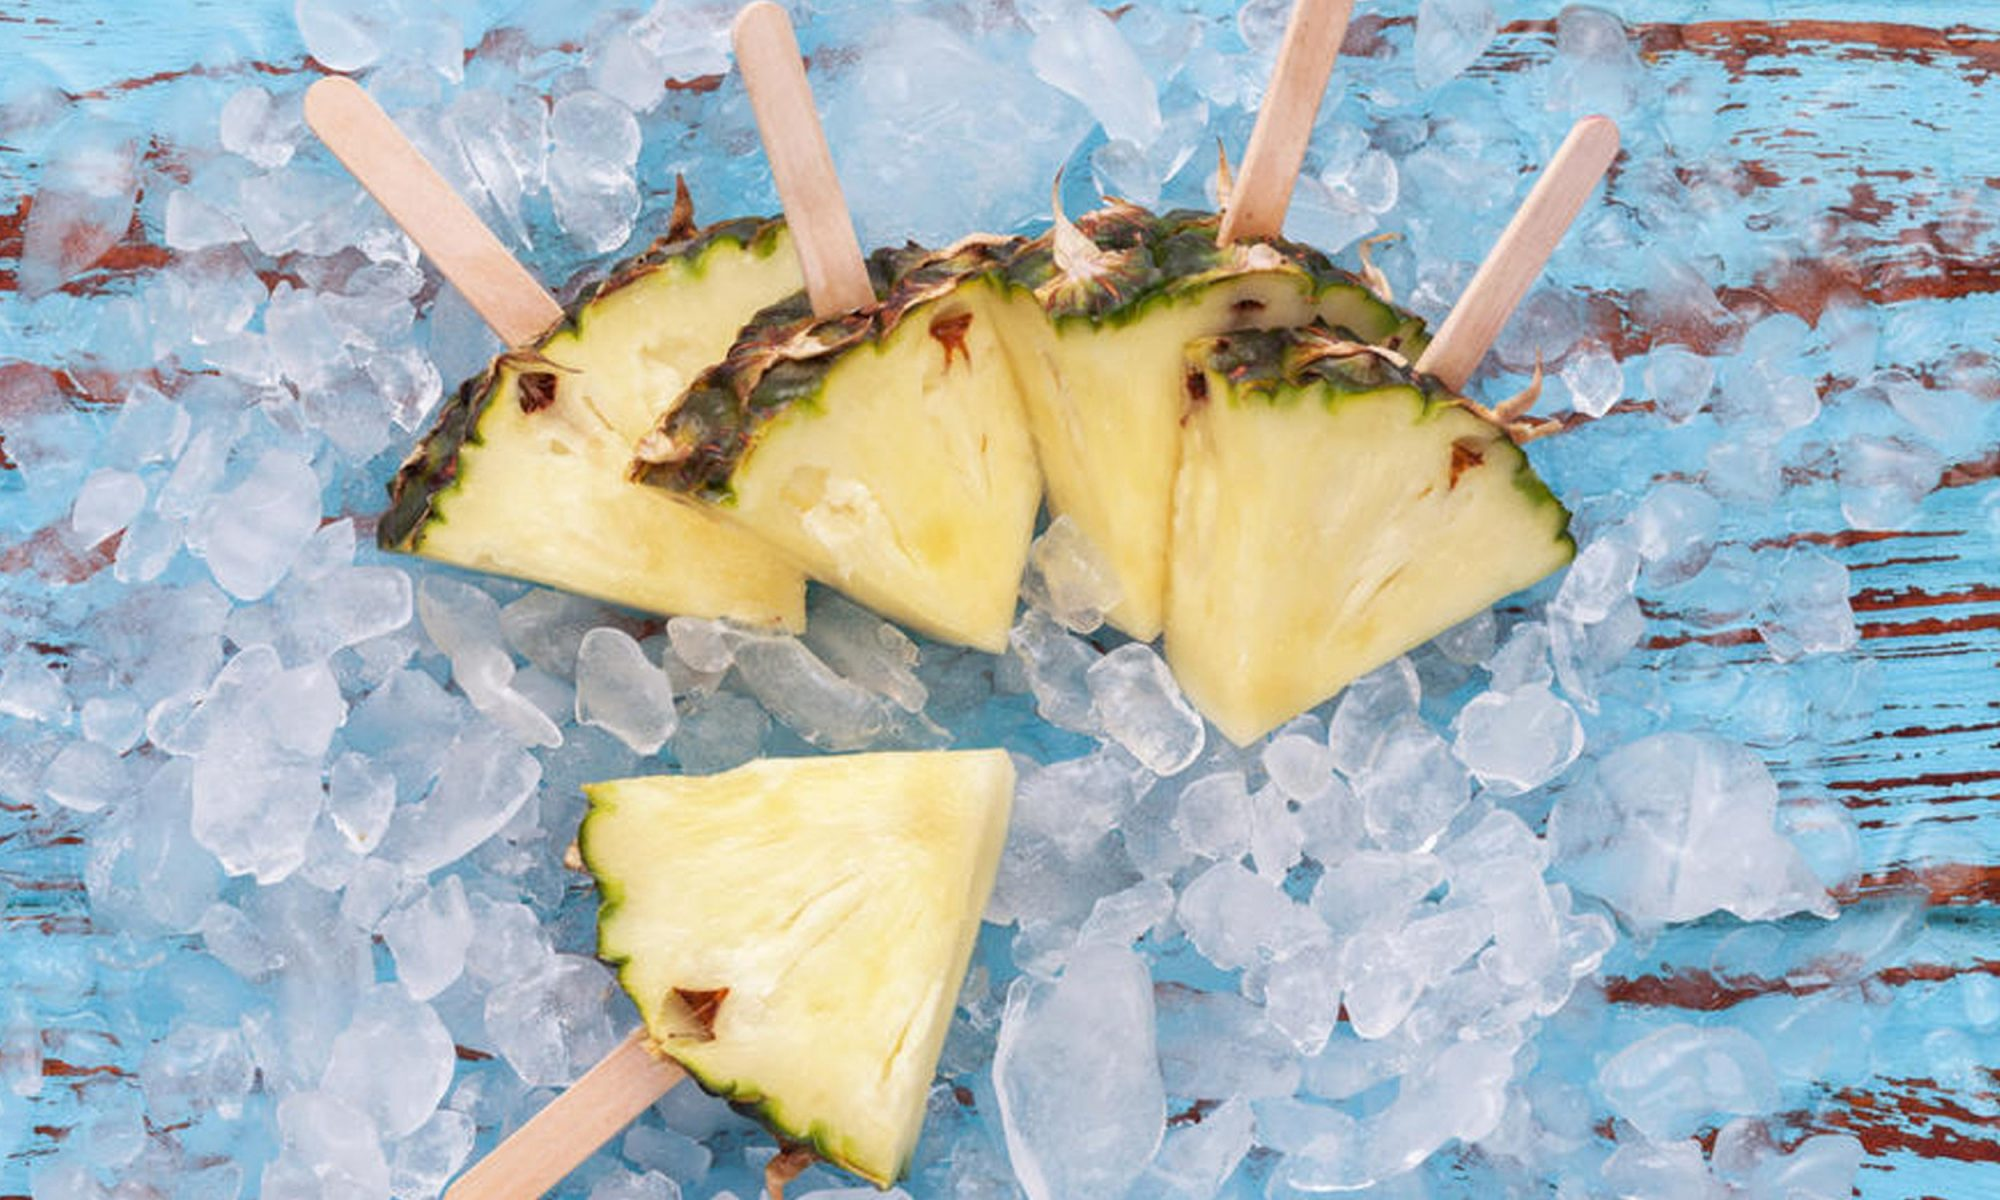 EC: Pro Tip: Keep Frozen Pineapple on Hand at All Times in the Summer